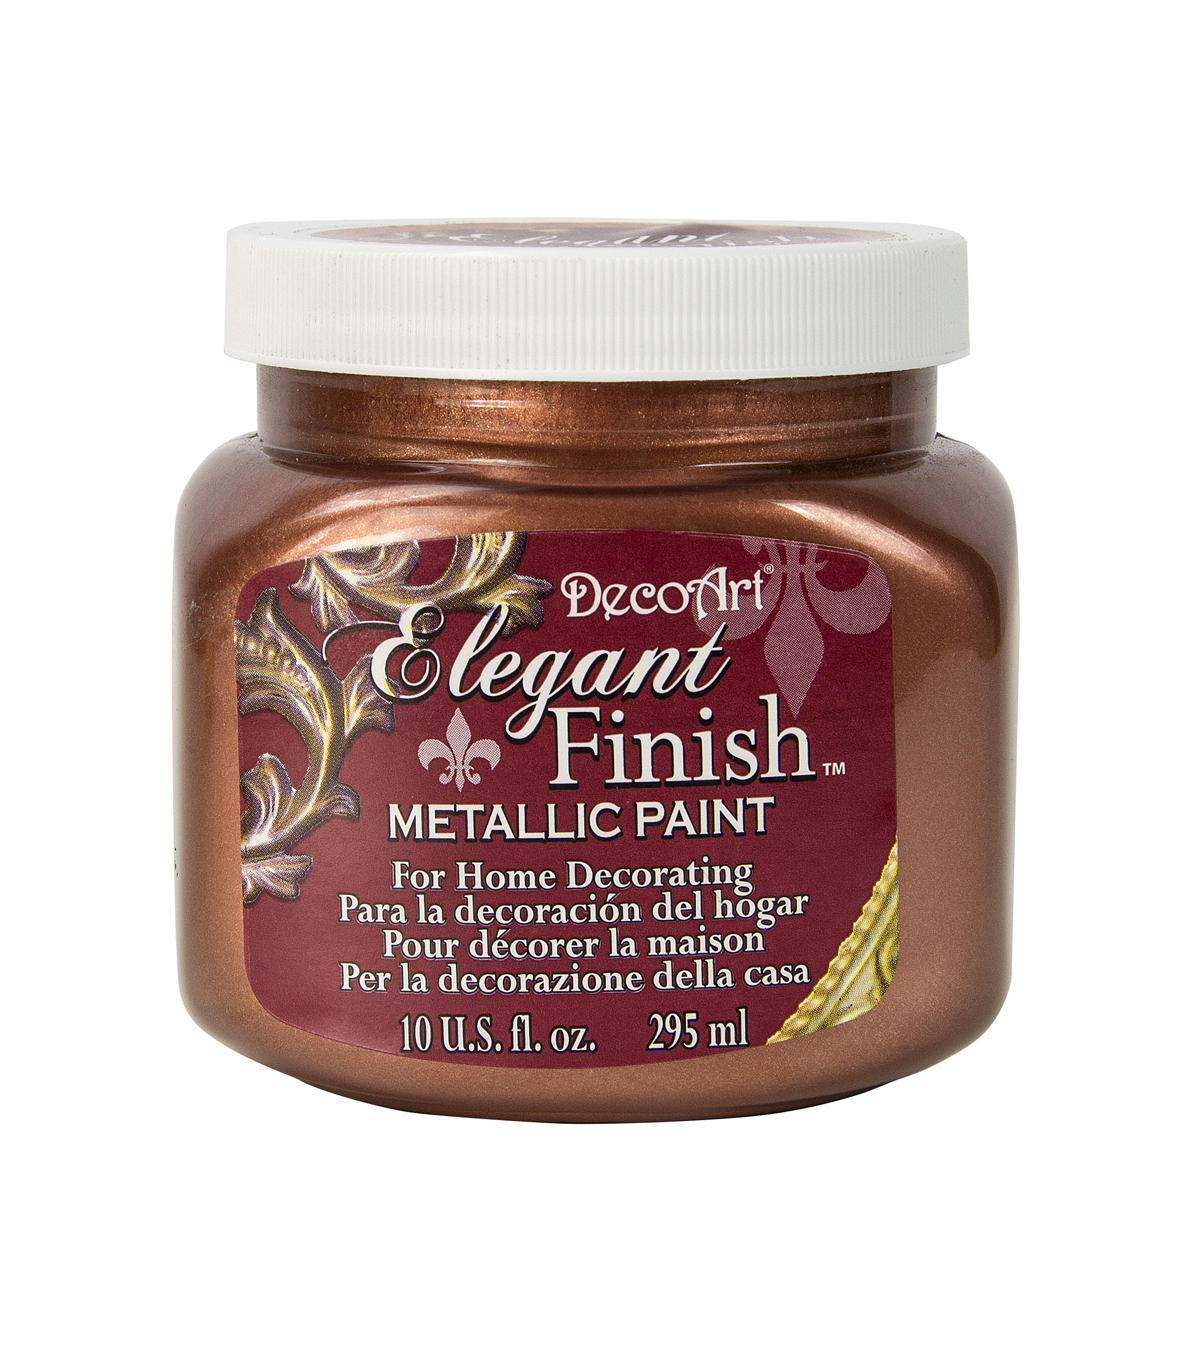 DecoArt Elegant Finish 10 fl. oz. Metallic Paint-Worn Penny